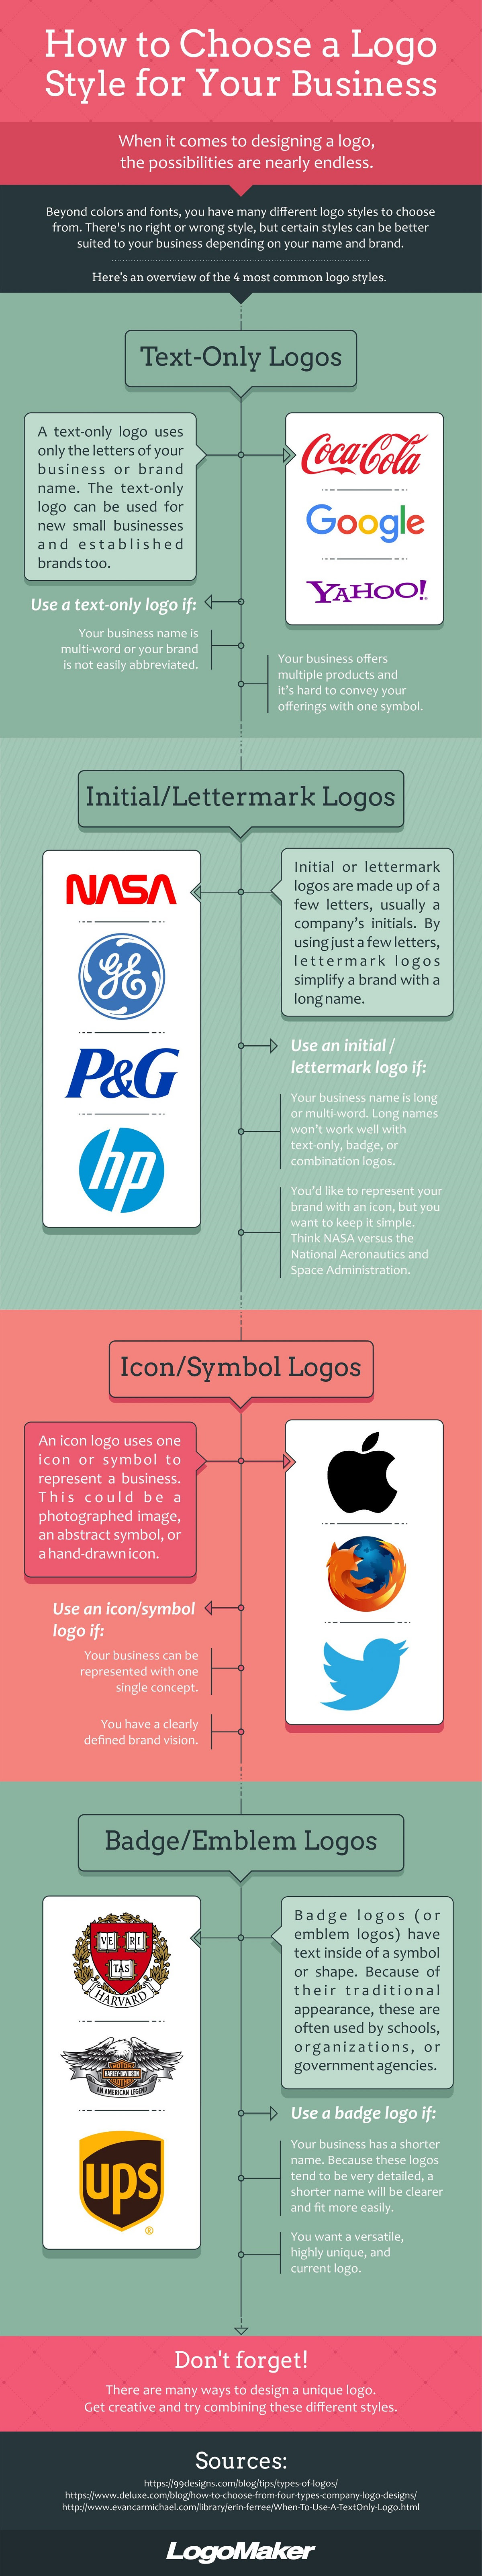 How to Choose a Logo Style for Your Business